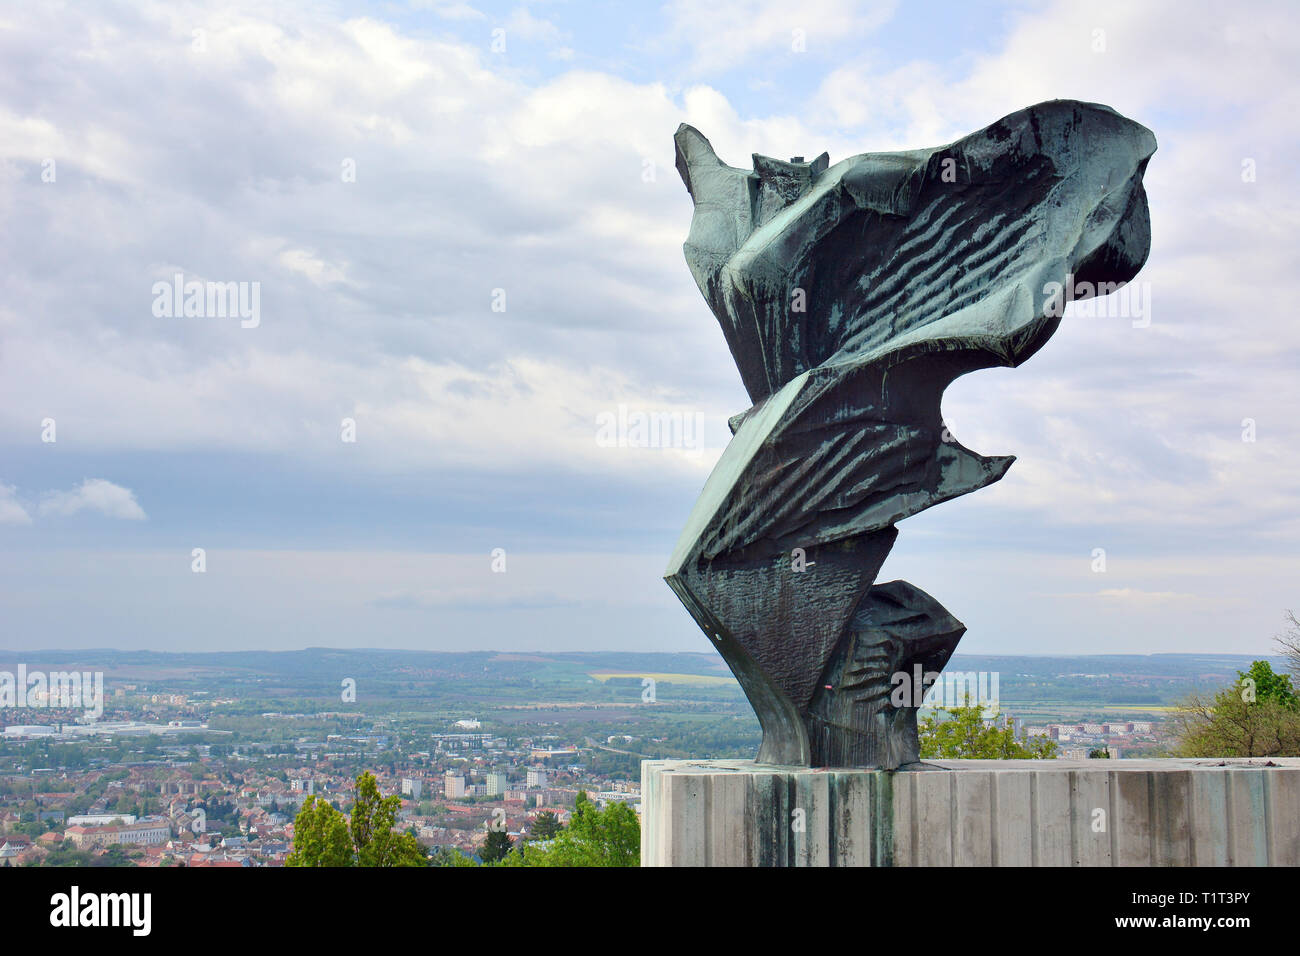 texto Ópera frecuentemente  Nike statue on the hill, Pecs, Hungary. Nike szobra, Pecs, Magyarorszag  Stock Photo - Alamy